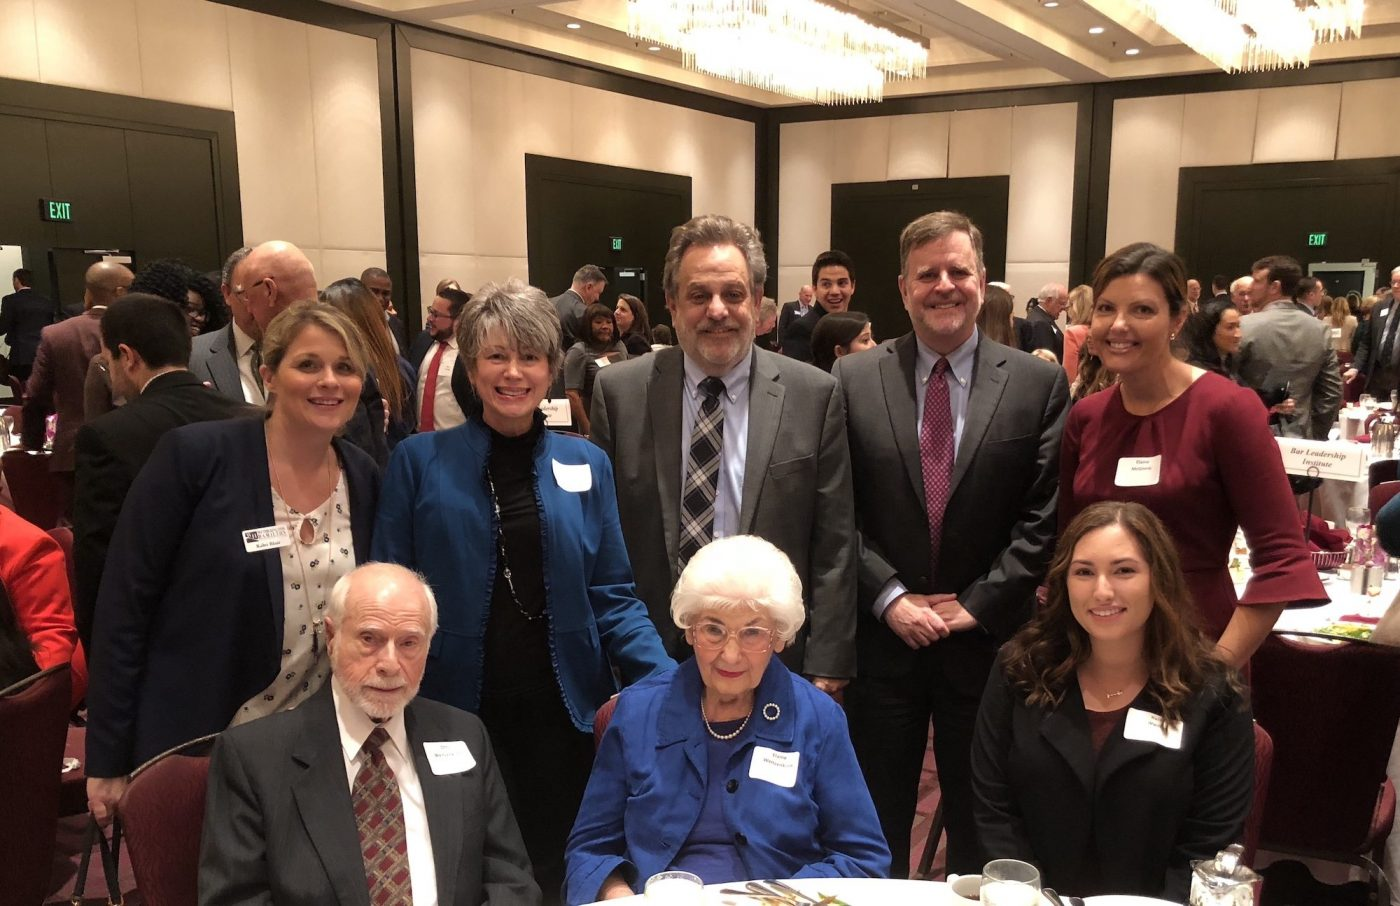 Hillsborough County Bar Association Diversity Luncheon - Hate Crimes: Yesterday and Today